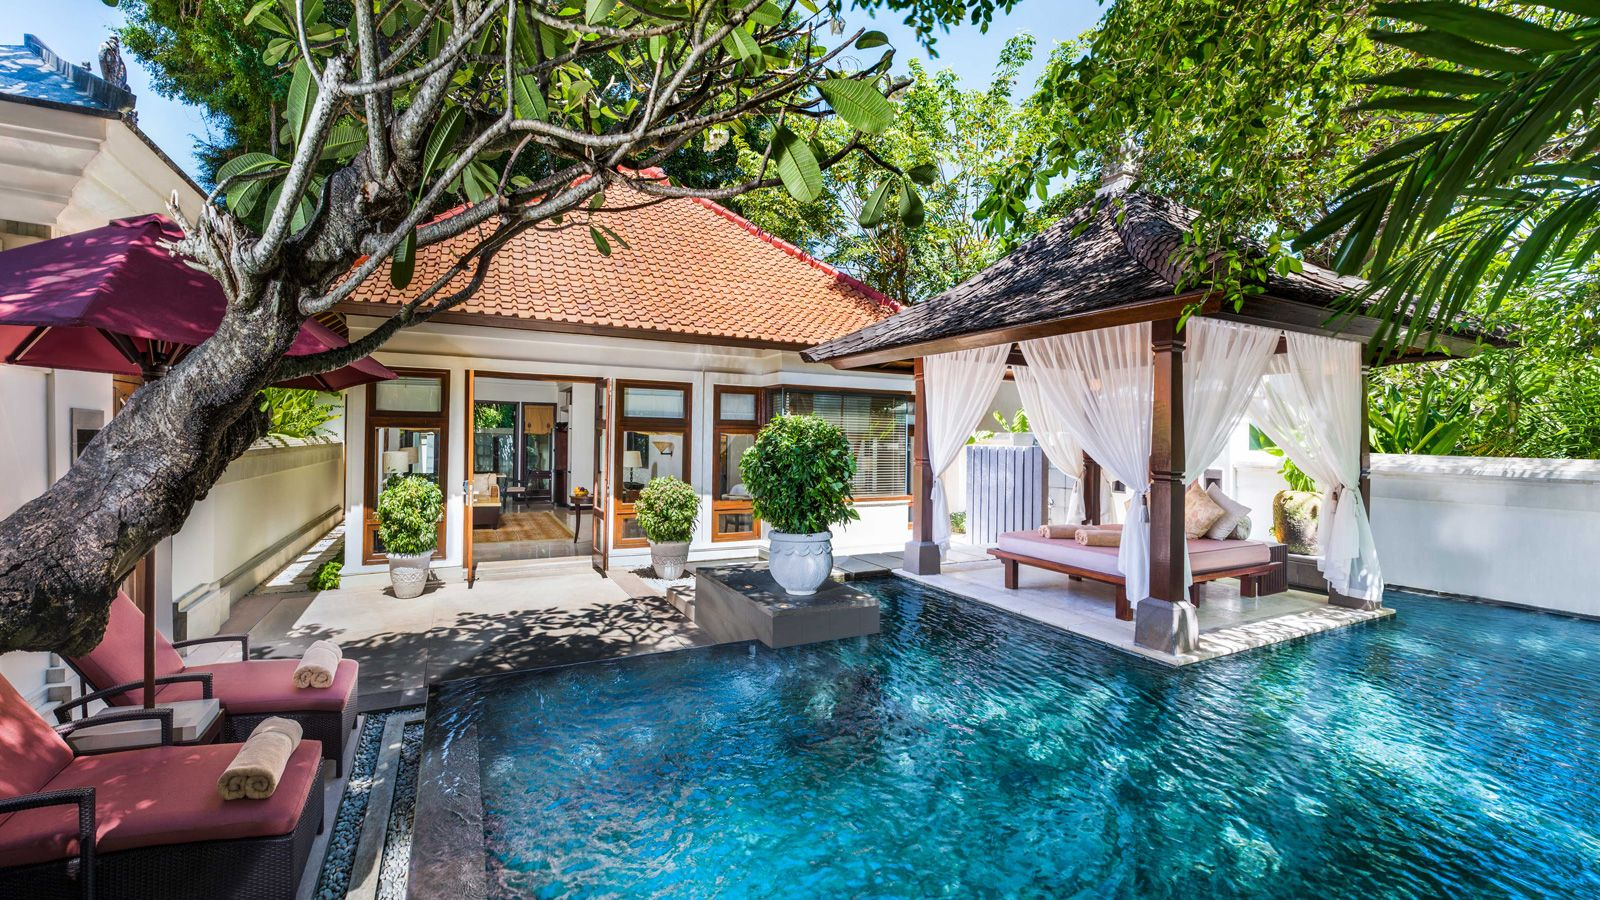 nusa dua hindu singles Our 1-bedroom single pavilion measures 240sqm plus a tranquil garden with bengong daybed and loungers, and an inviting 8x4m freshwater pool  nusa dua 80363, bali .